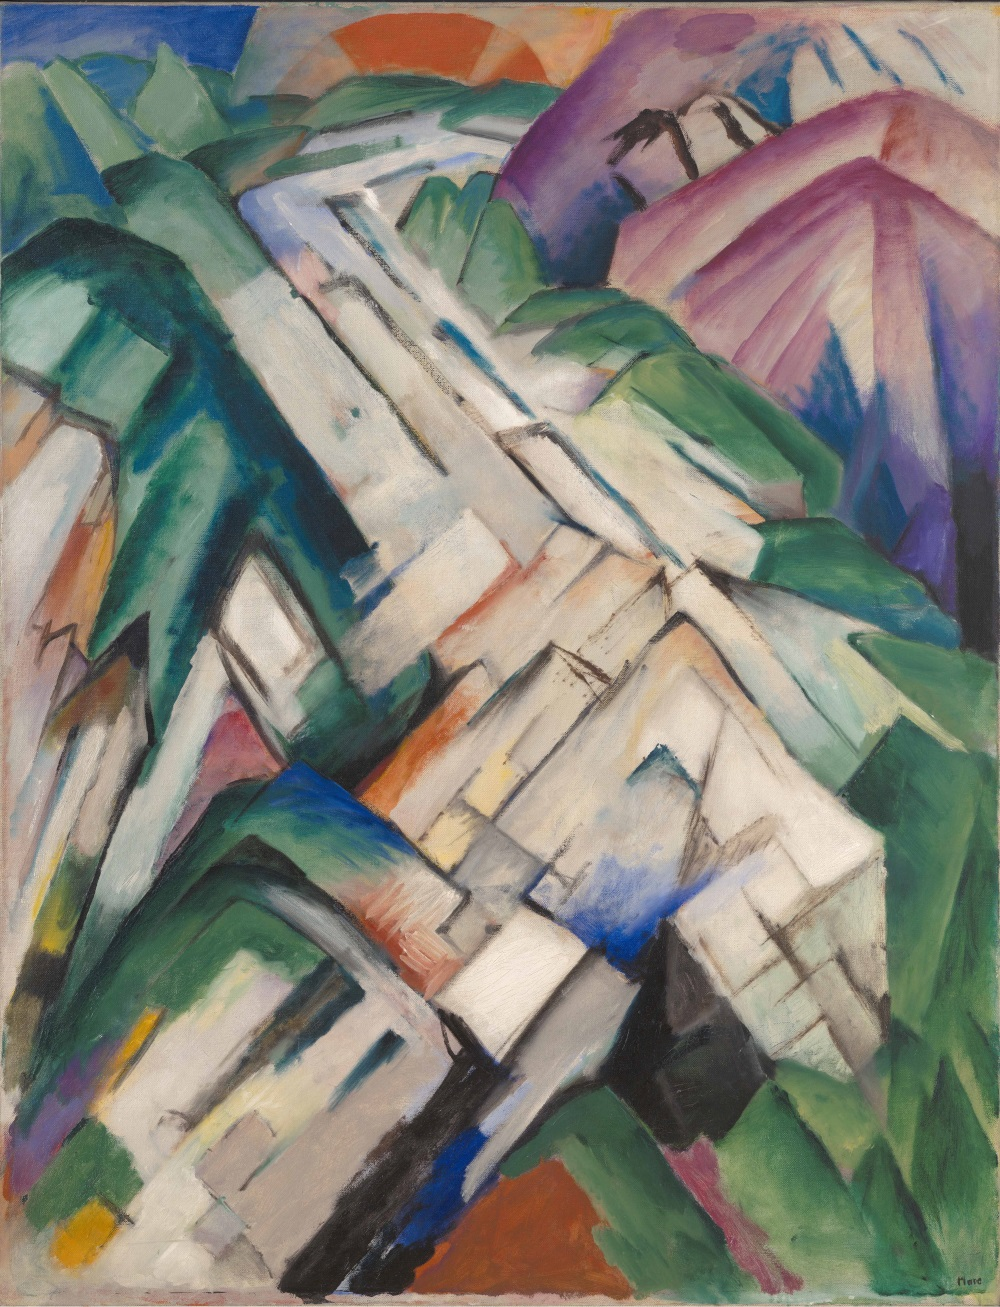 Franz Mac, Stony Path (Mountains/Landscape), 1911-12. Collection of the San Francisco Museum of Modern Art.